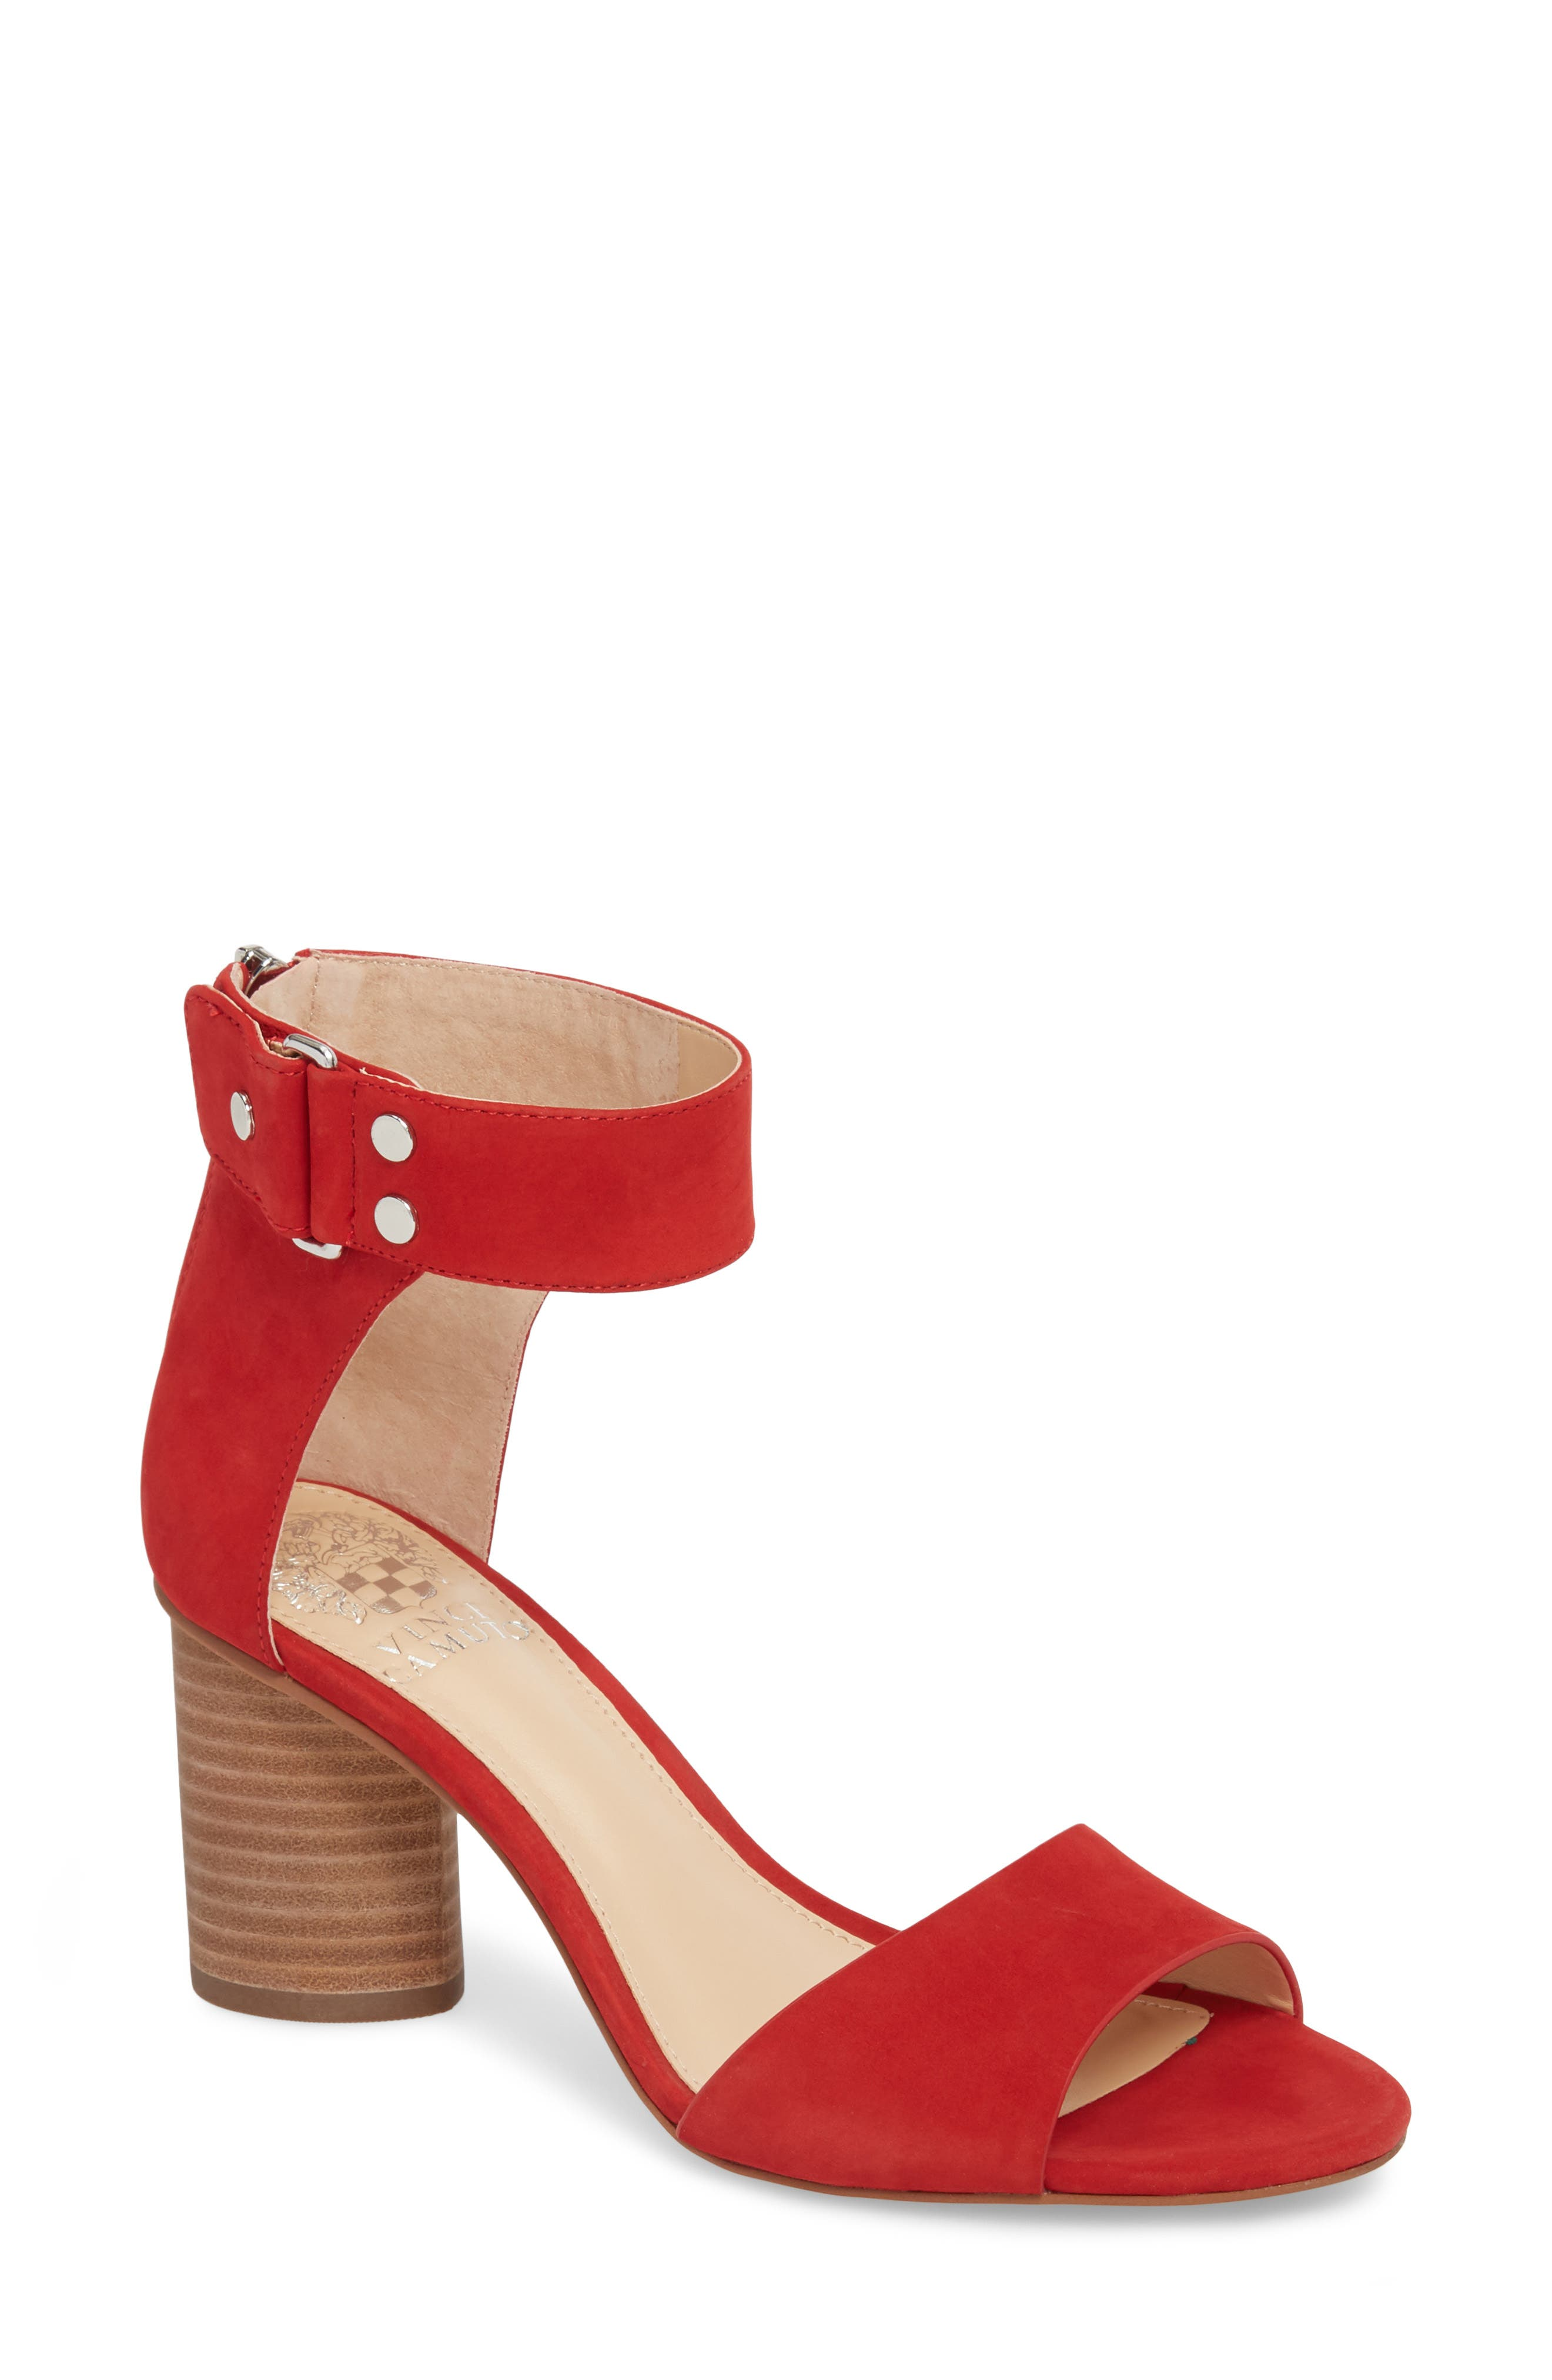 Jannali Ankle Strap Sandal,                         Main,                         color, Cherry Red Leather